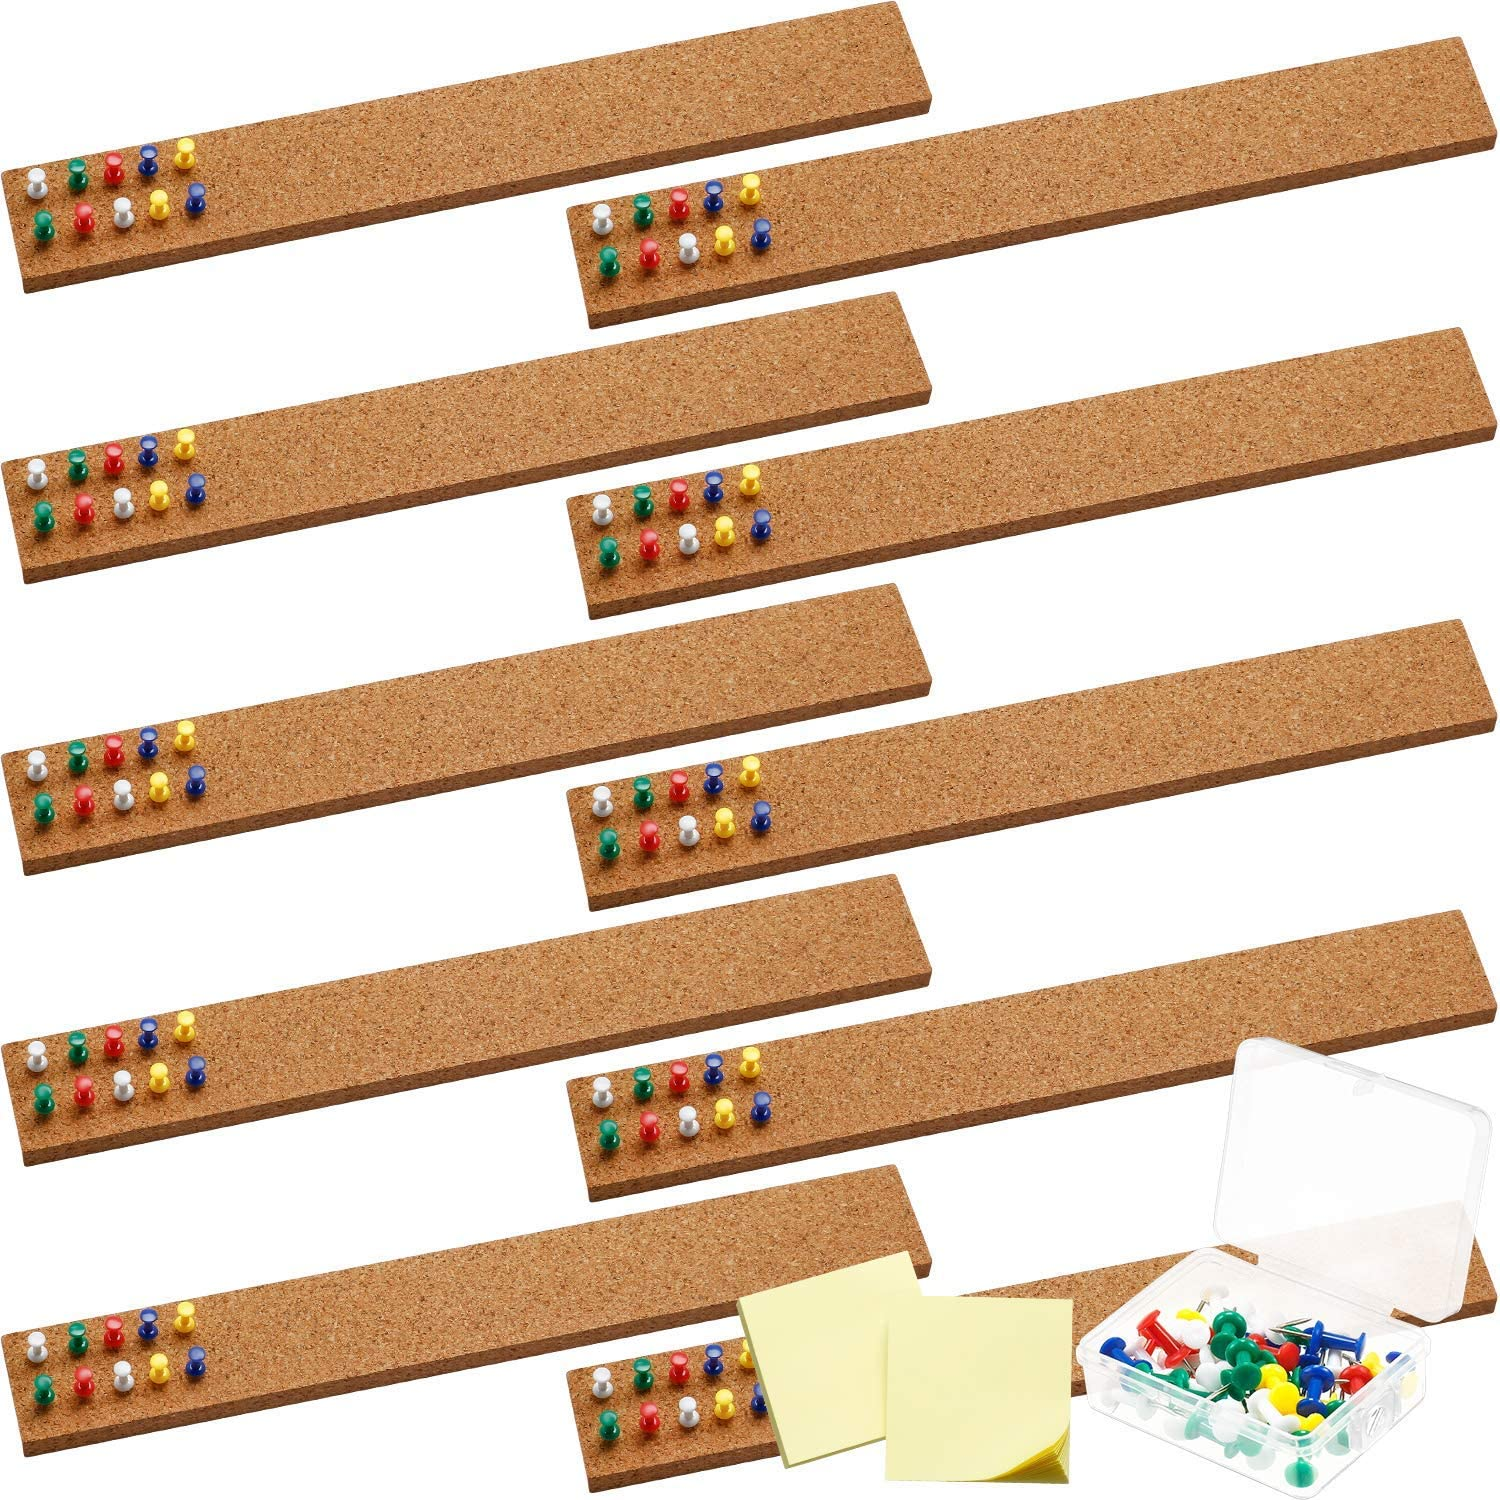 10 Pieces Cork Board Strips Cork Strips Cork Bulletin Bar Strips 2 x 15 Inch Cord Board Frameless Self-Adhesive Cork Board with 40 Pieces Push Pin and 2 Pieces Sticky Note for Office School Home Decor